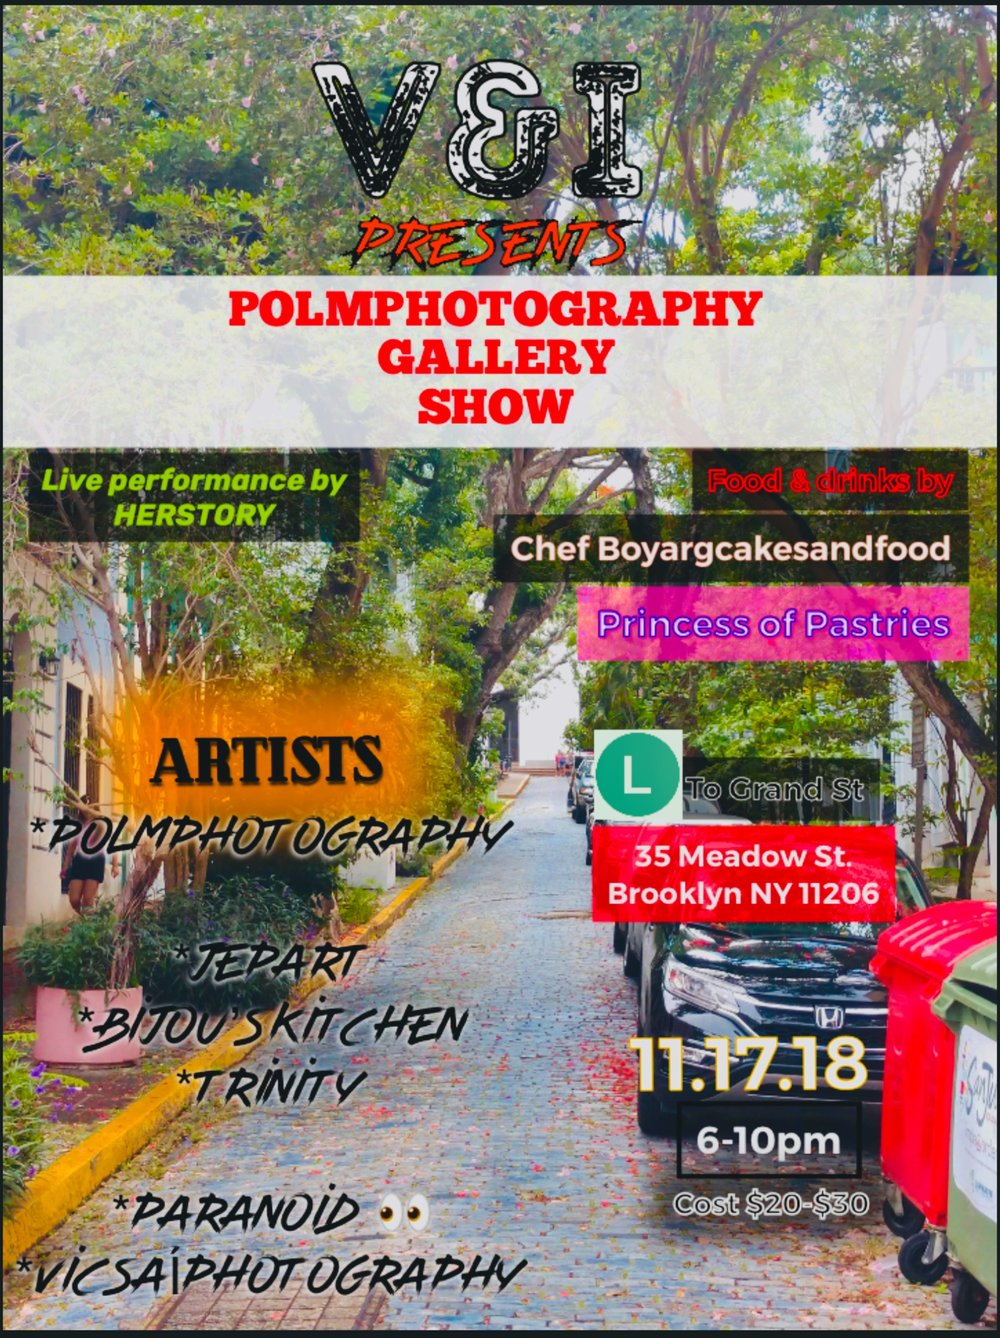 https://www.eventbrite.com/e/vi-polm-photography-gallery-show-tickets-49960363793